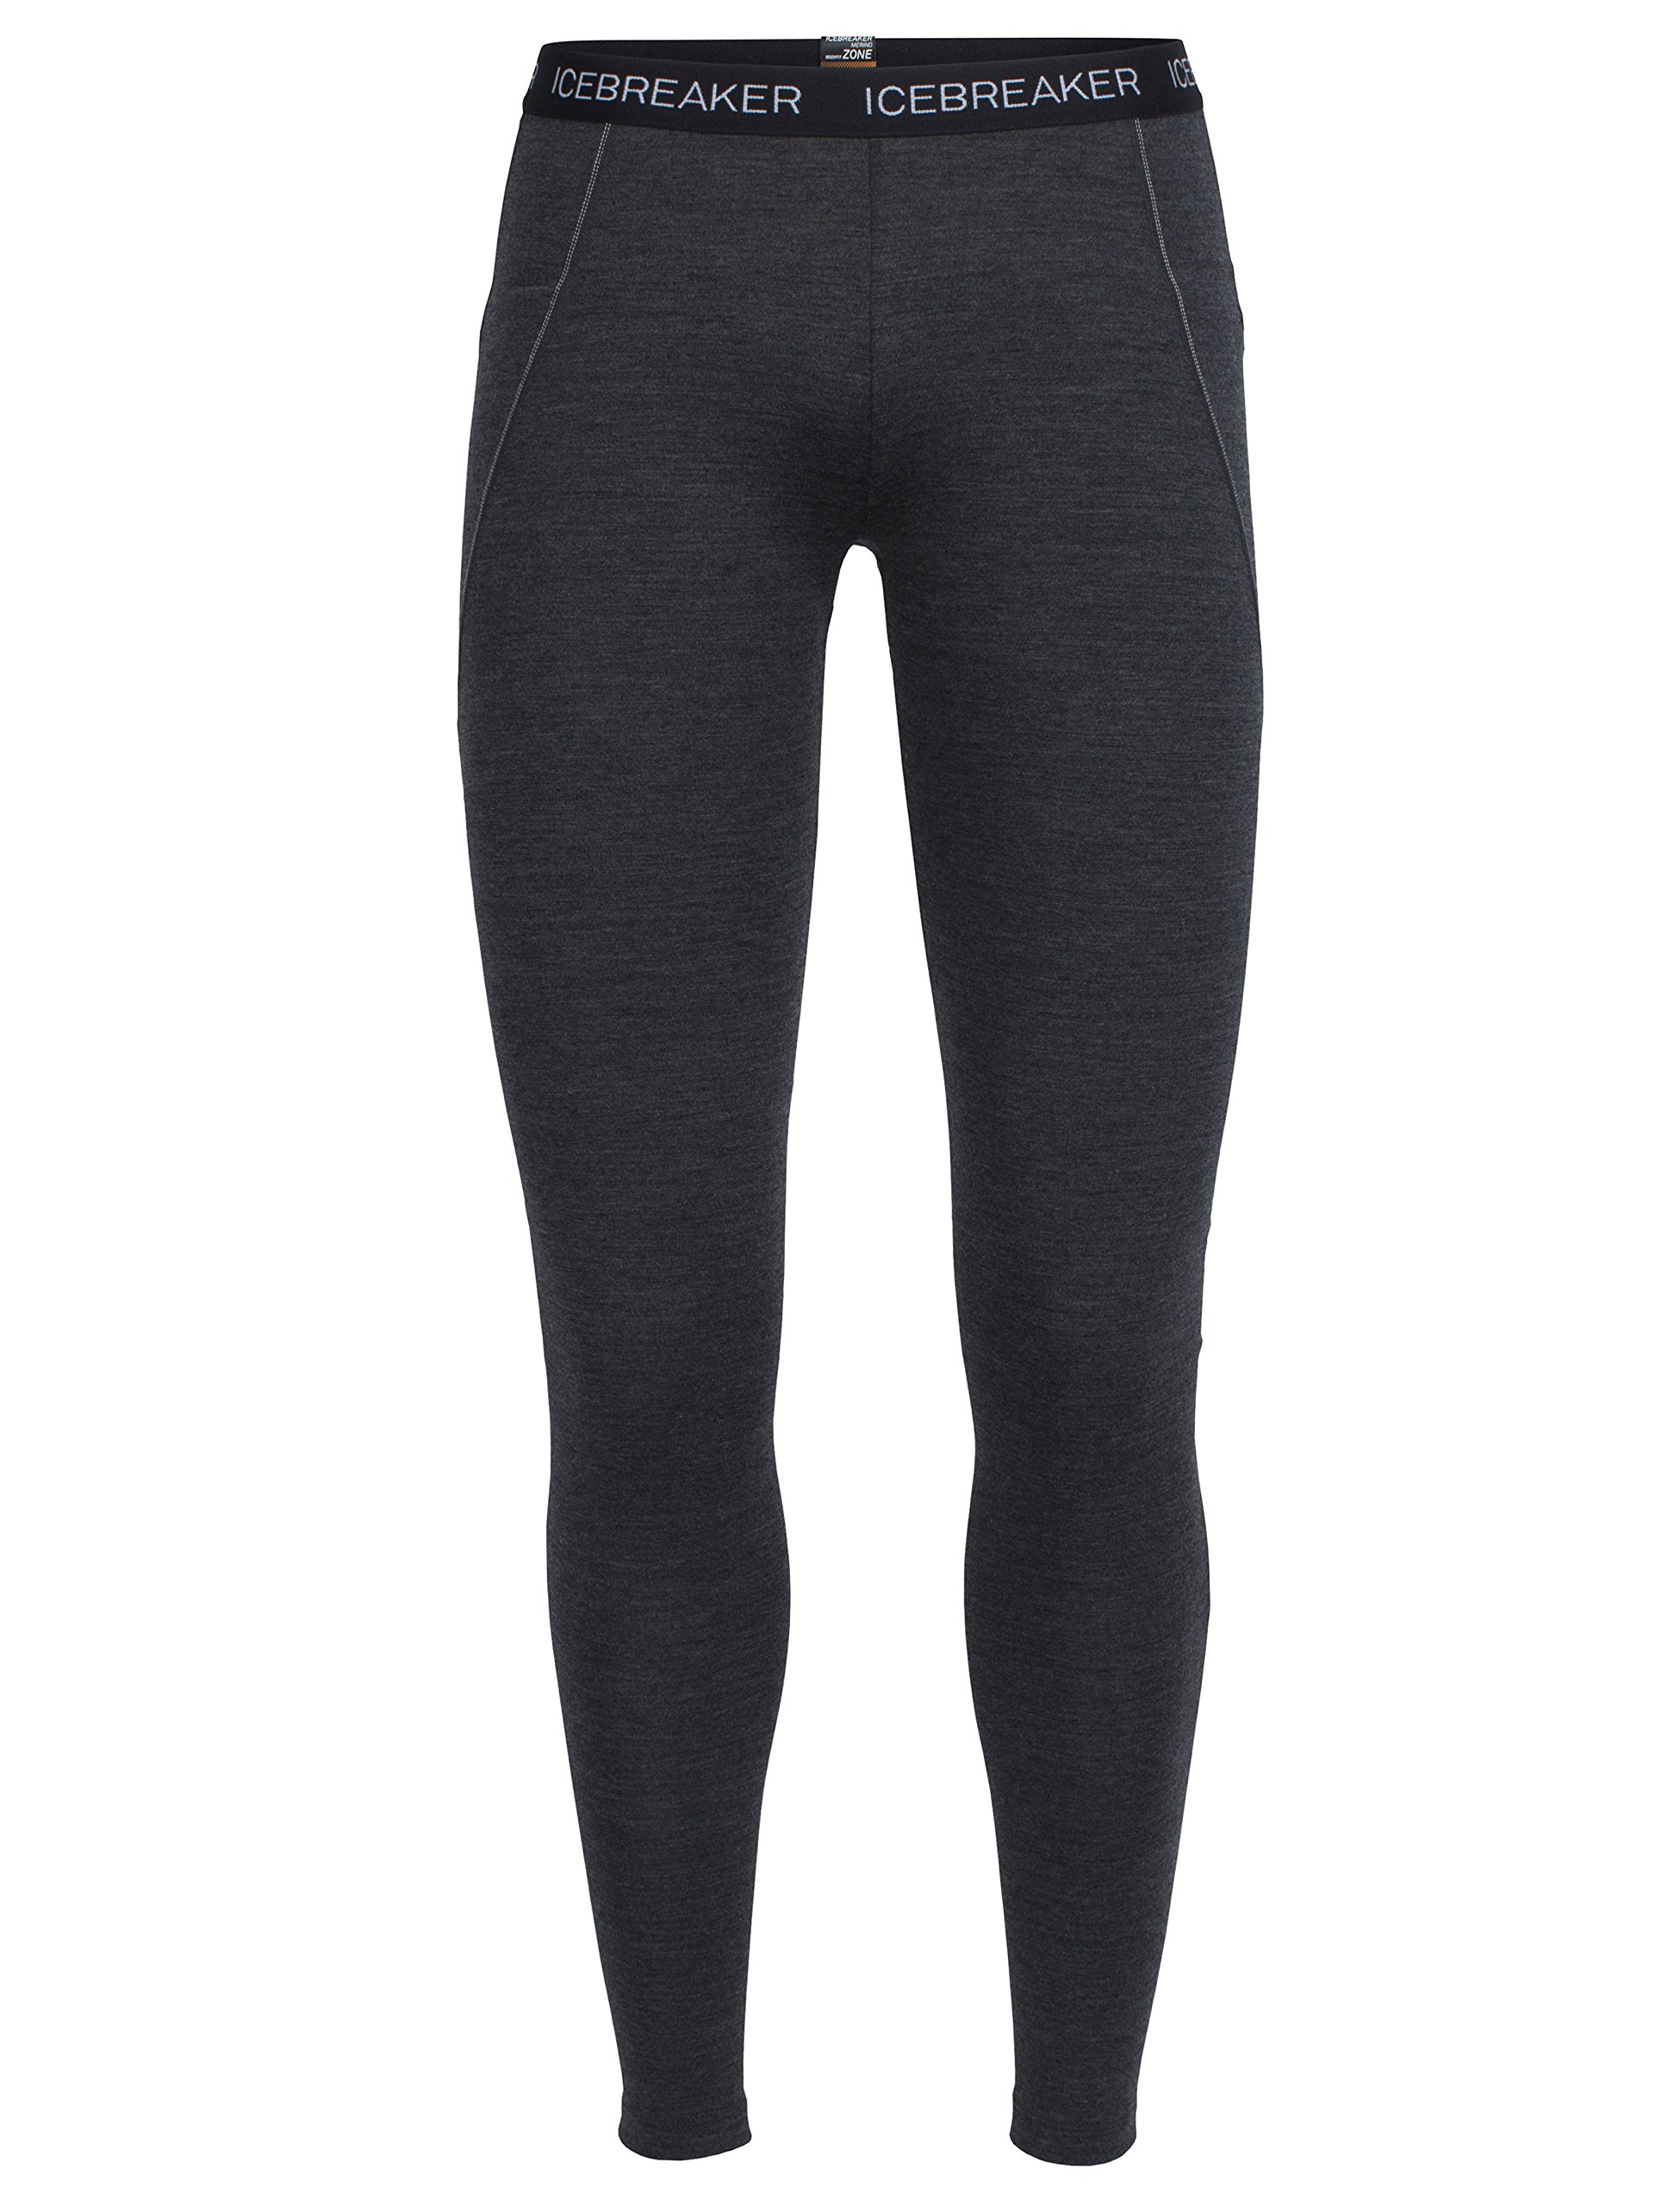 Icebreaker Merino Women's Winter Zone Leggings, Jet Heather/Black/Snow, Small